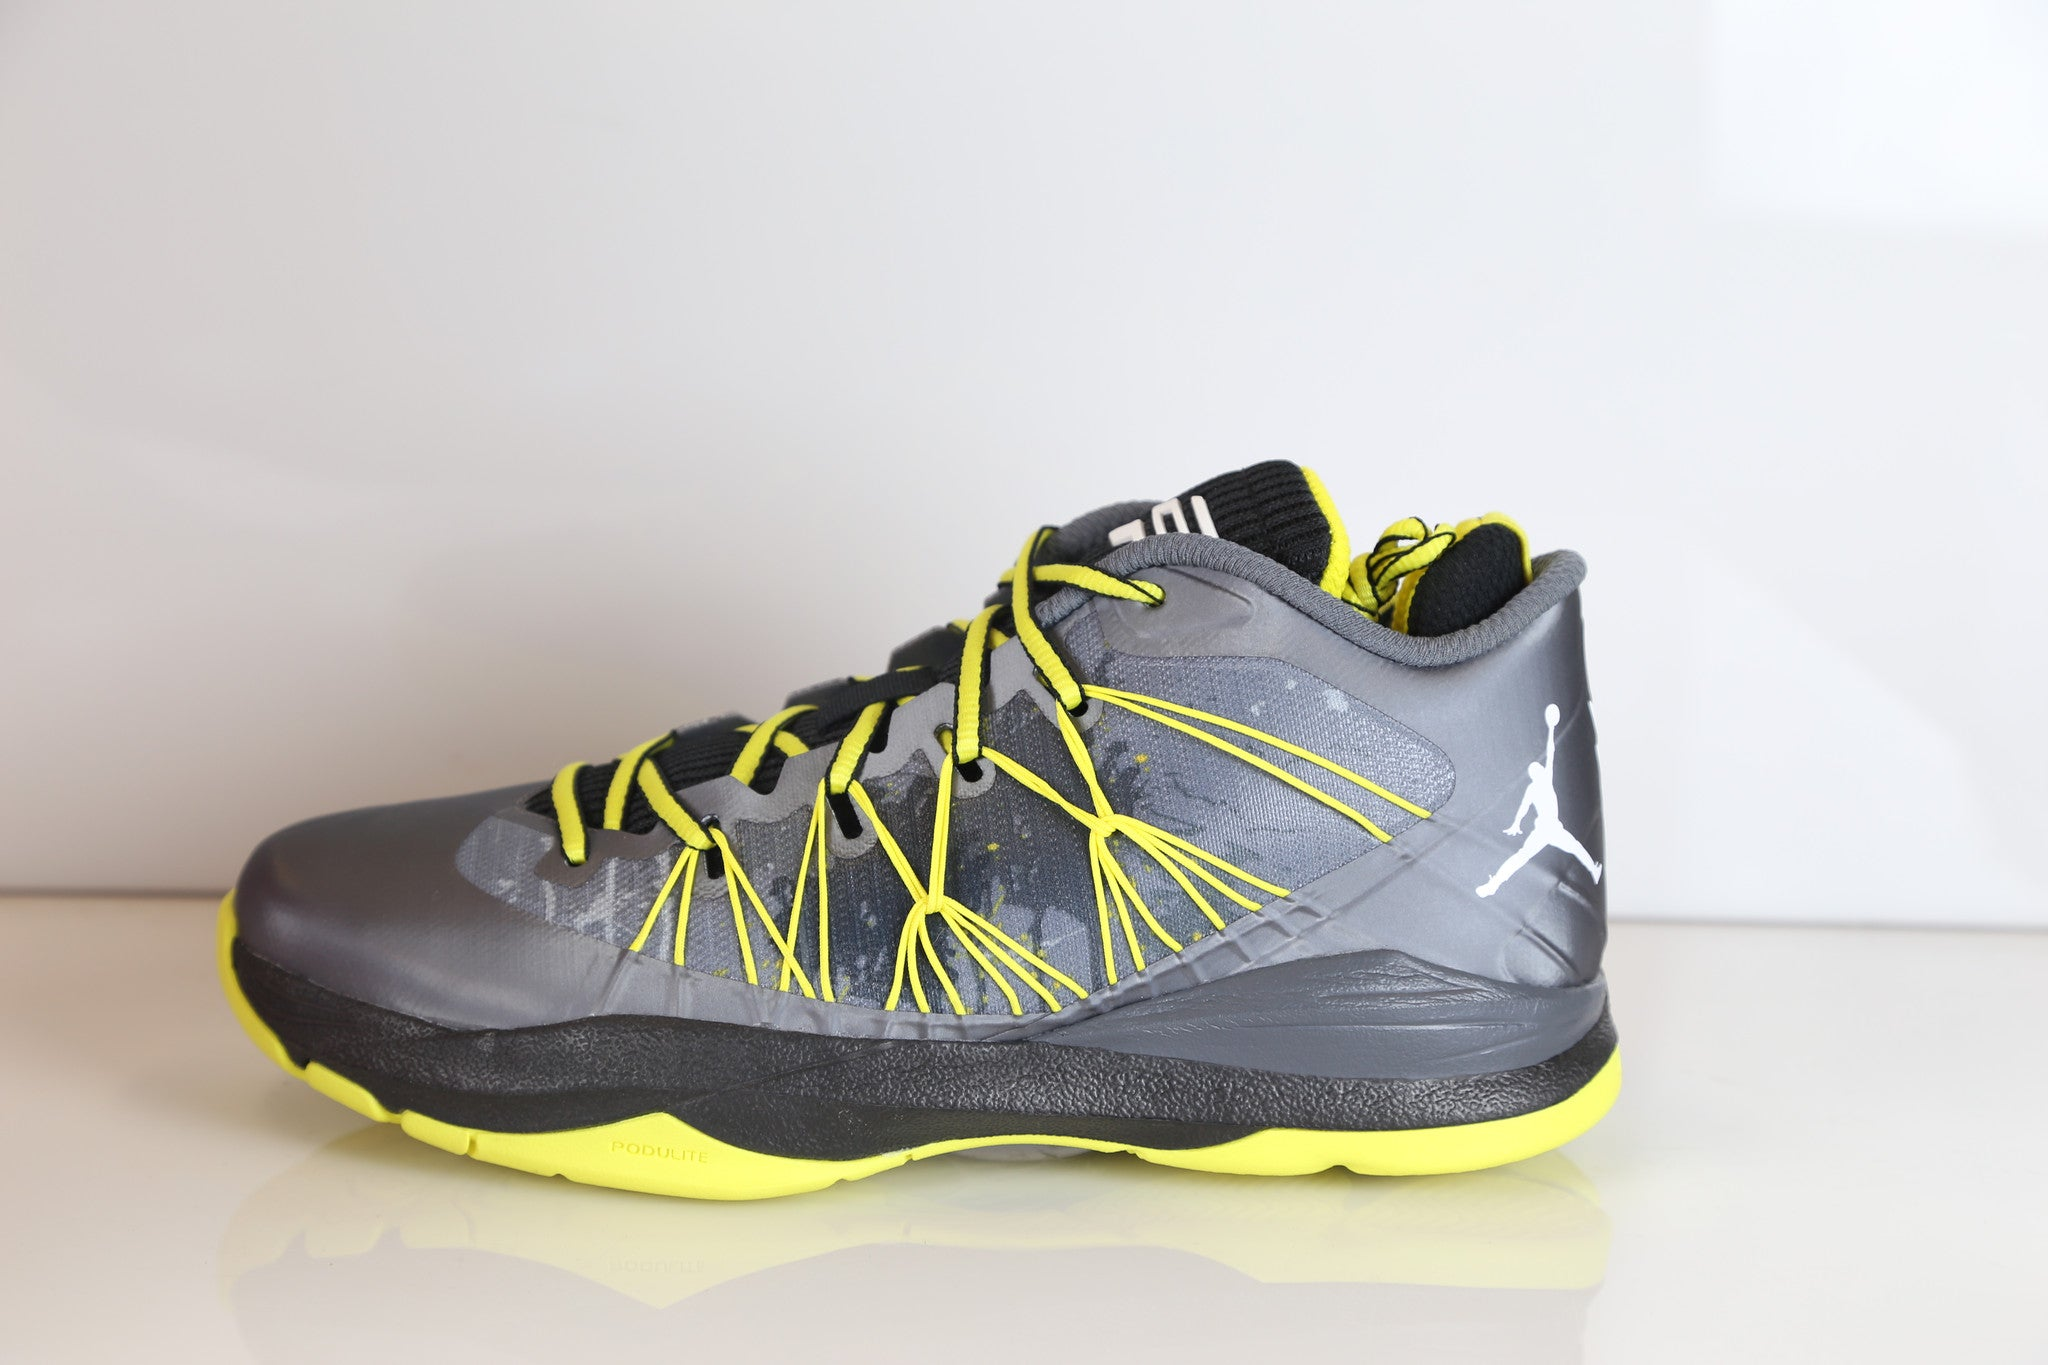 e0ea5ce48971 Nike Air Jordan CP3.VII AE Dark Grey Vibrant Yellow 644805-070 ...